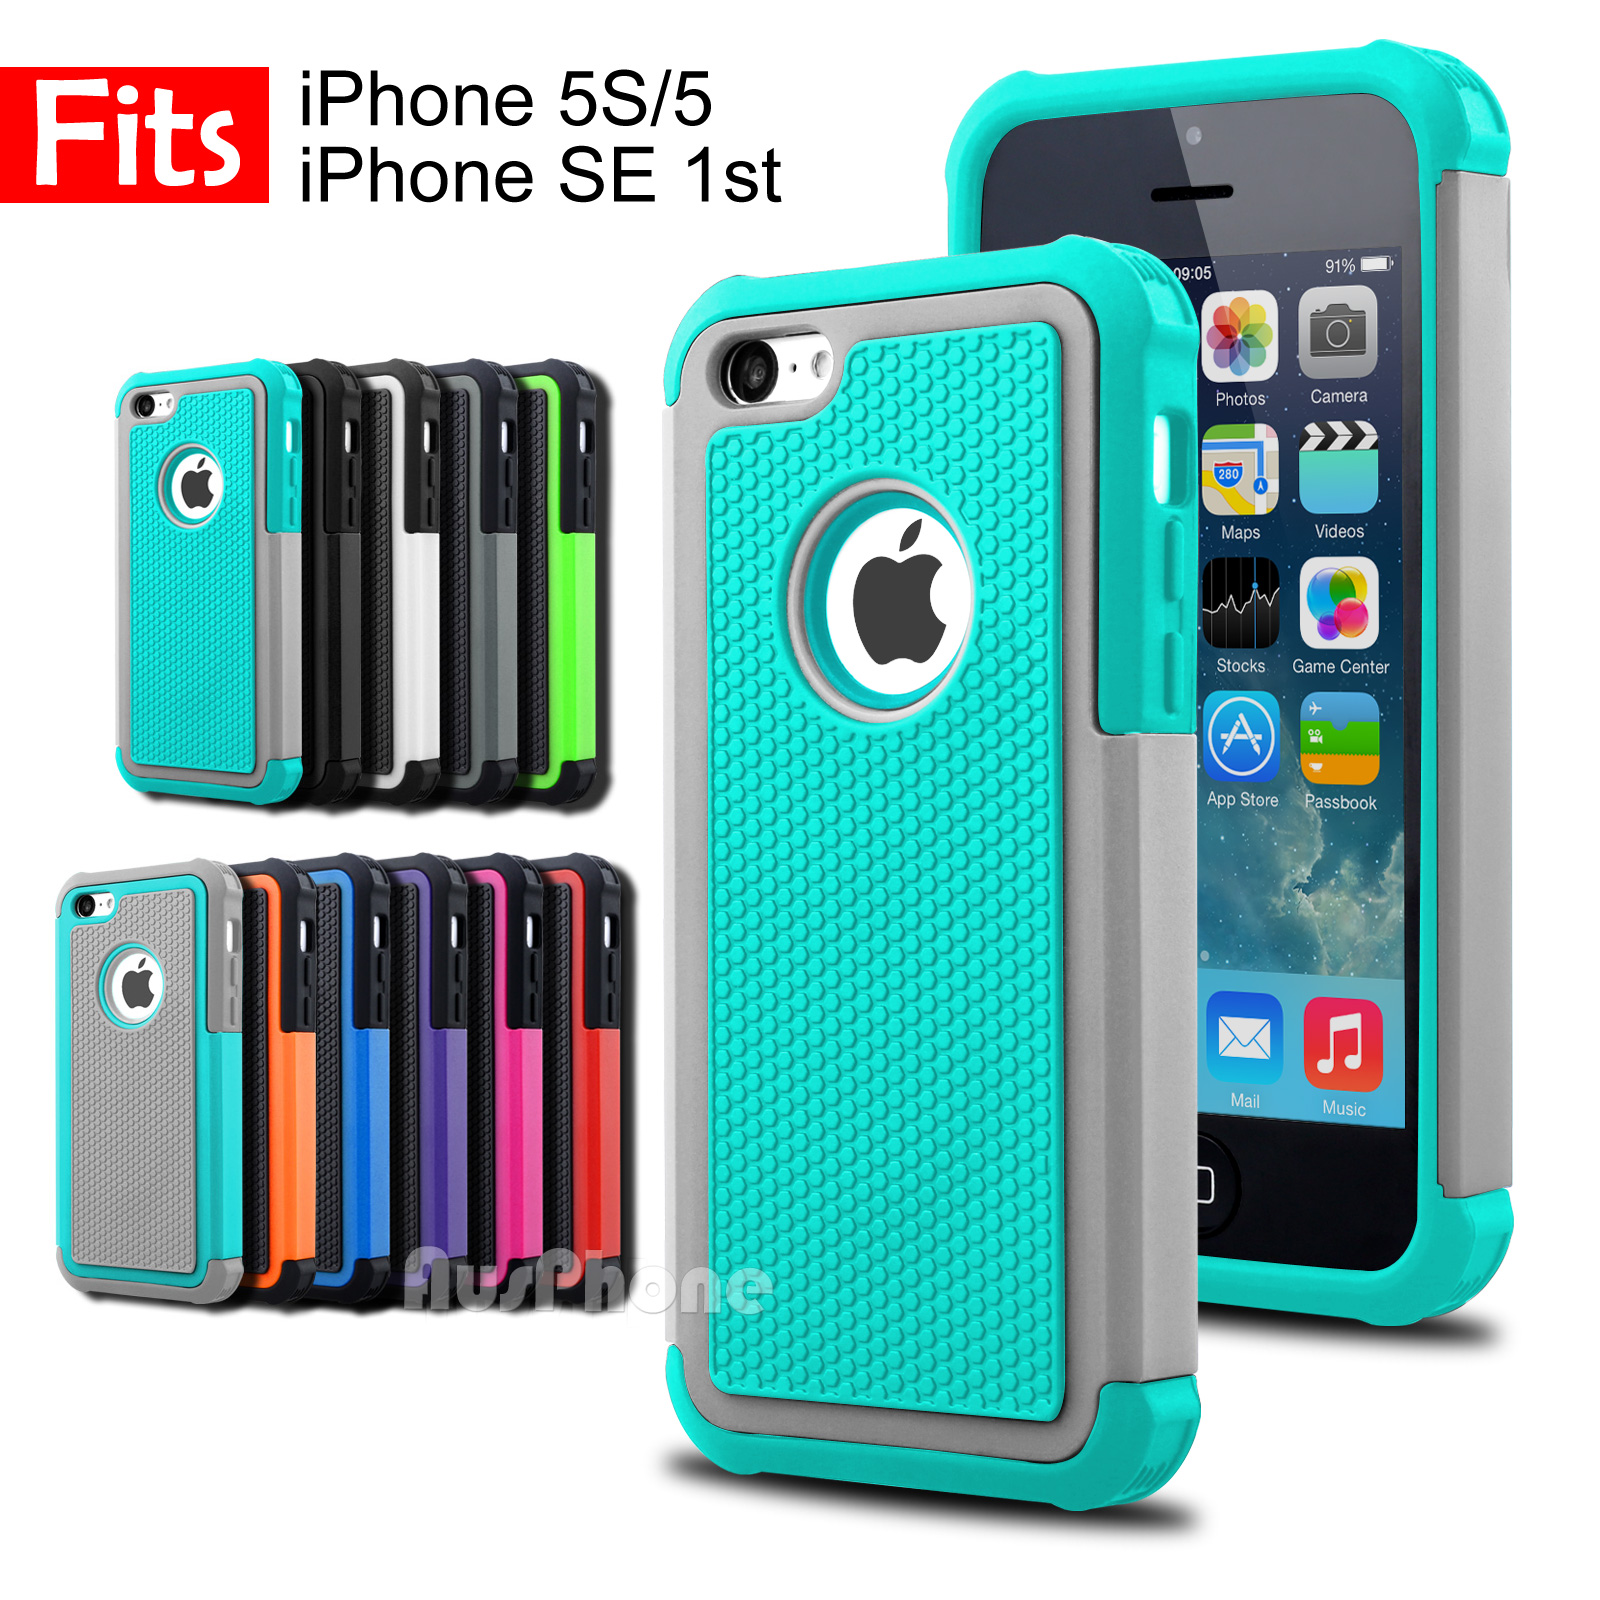 promo code 088ce d0675 Details about Shockproof Heavy Duty Silicone Hard Tough Cover Case for  Apple iPhone SE 5S 5